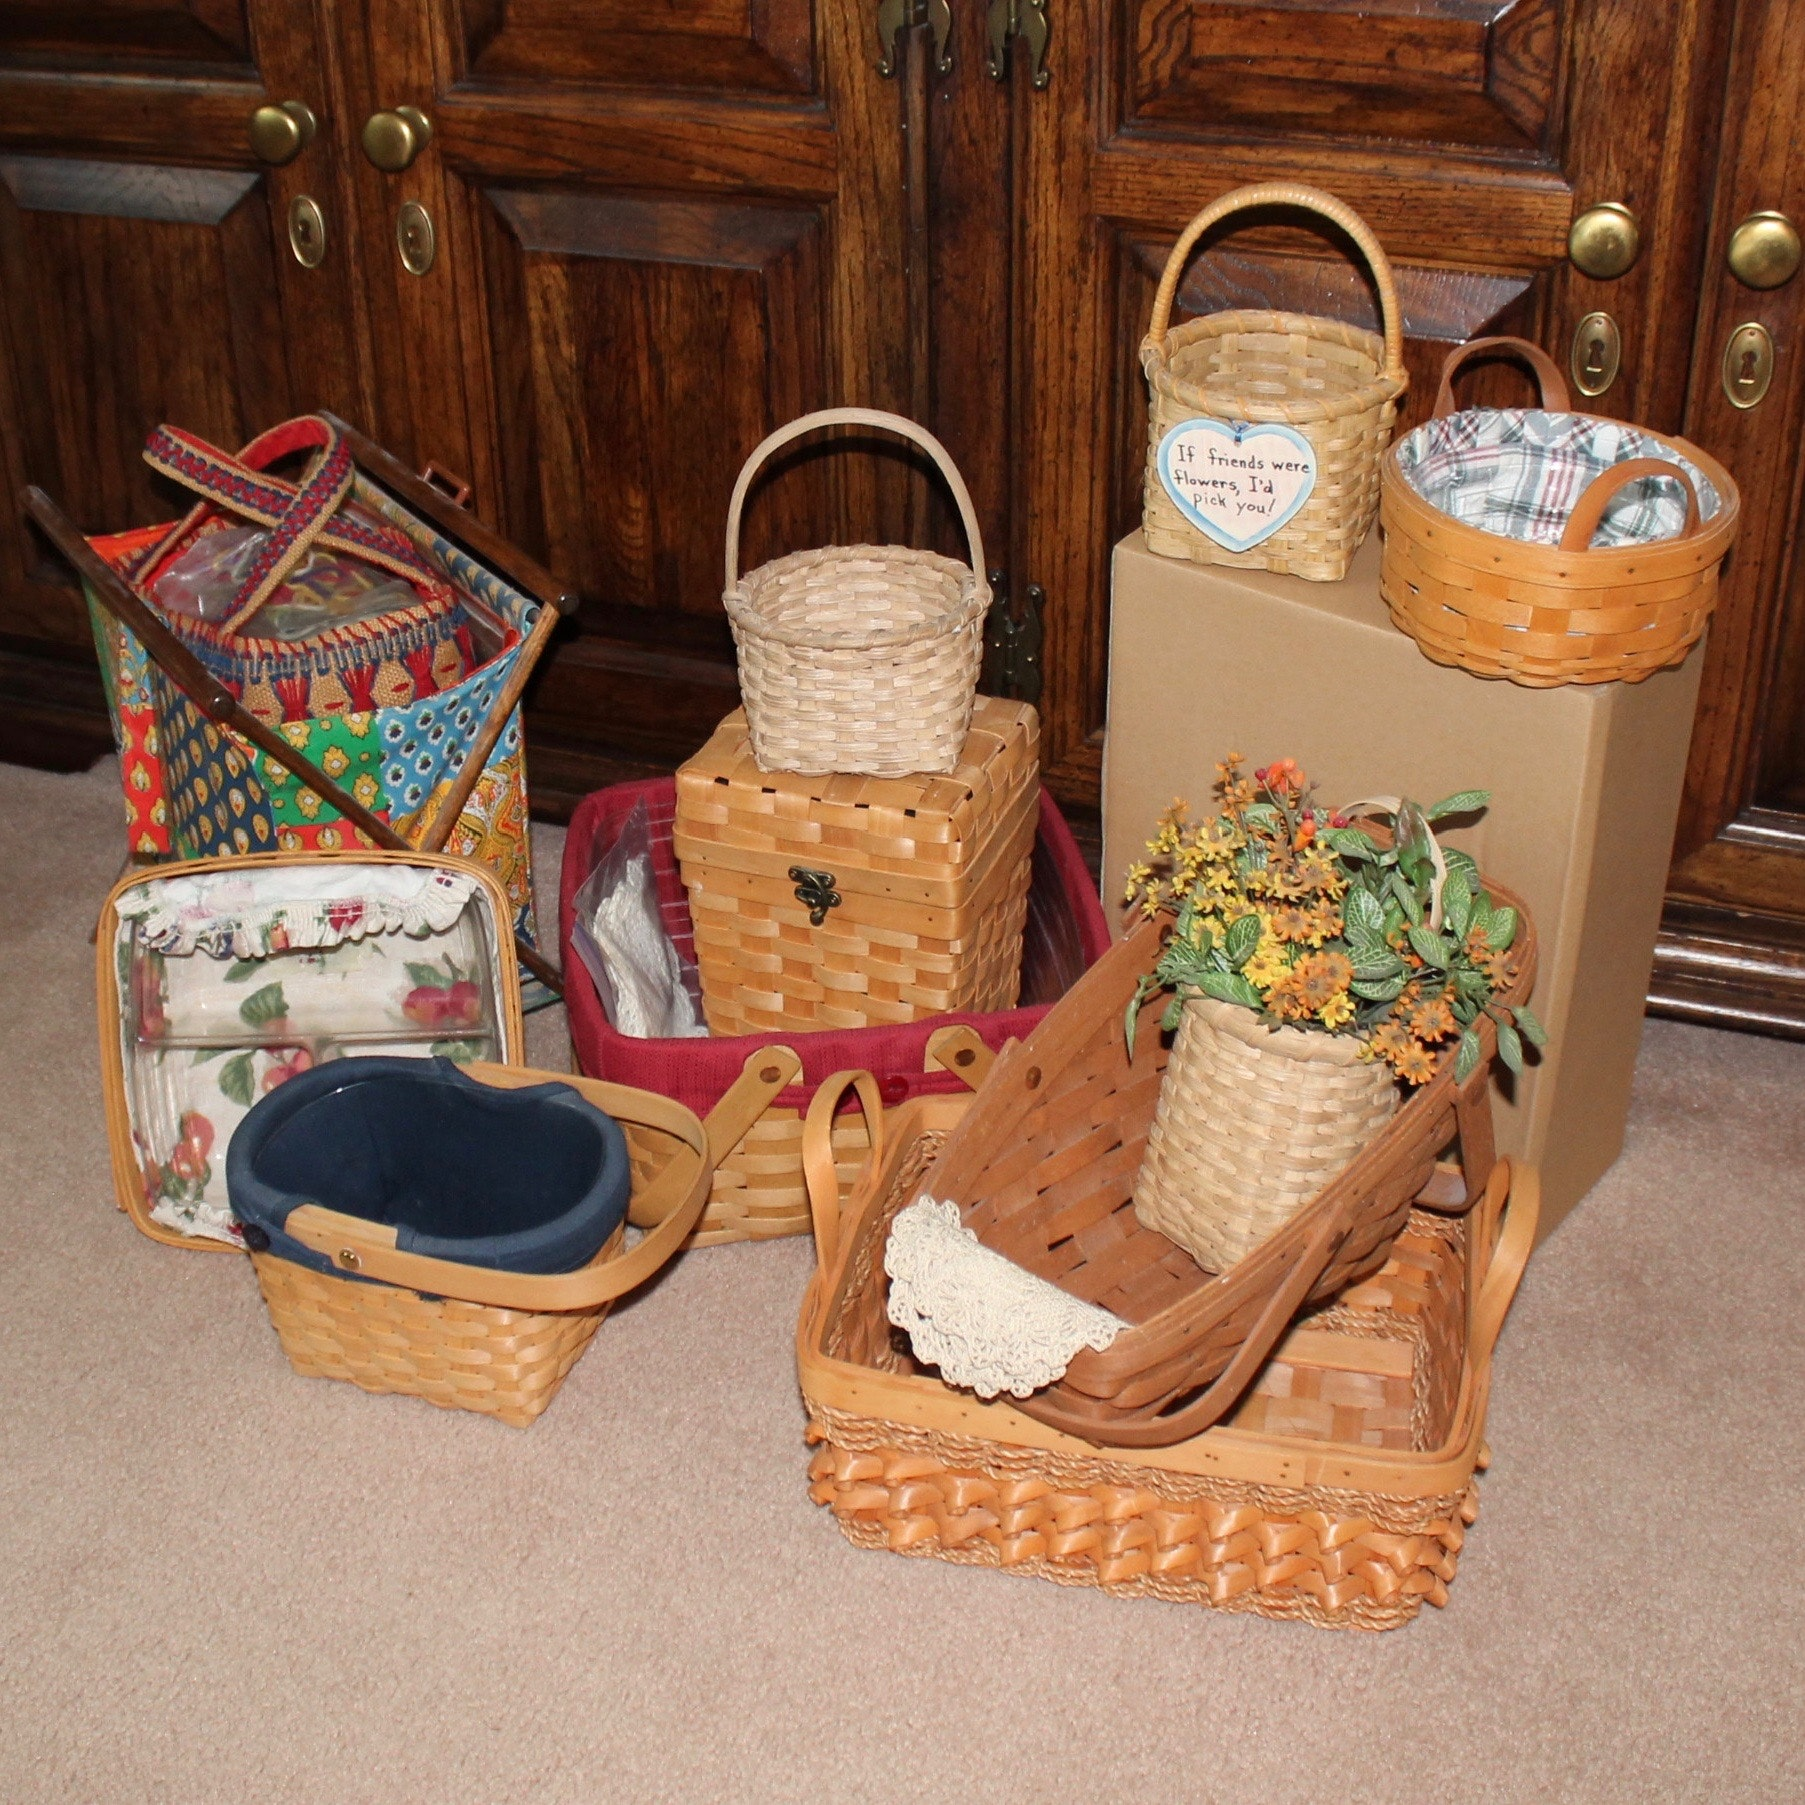 Woven Baskets Featuring Longaberger and Vintage Knitting Basket